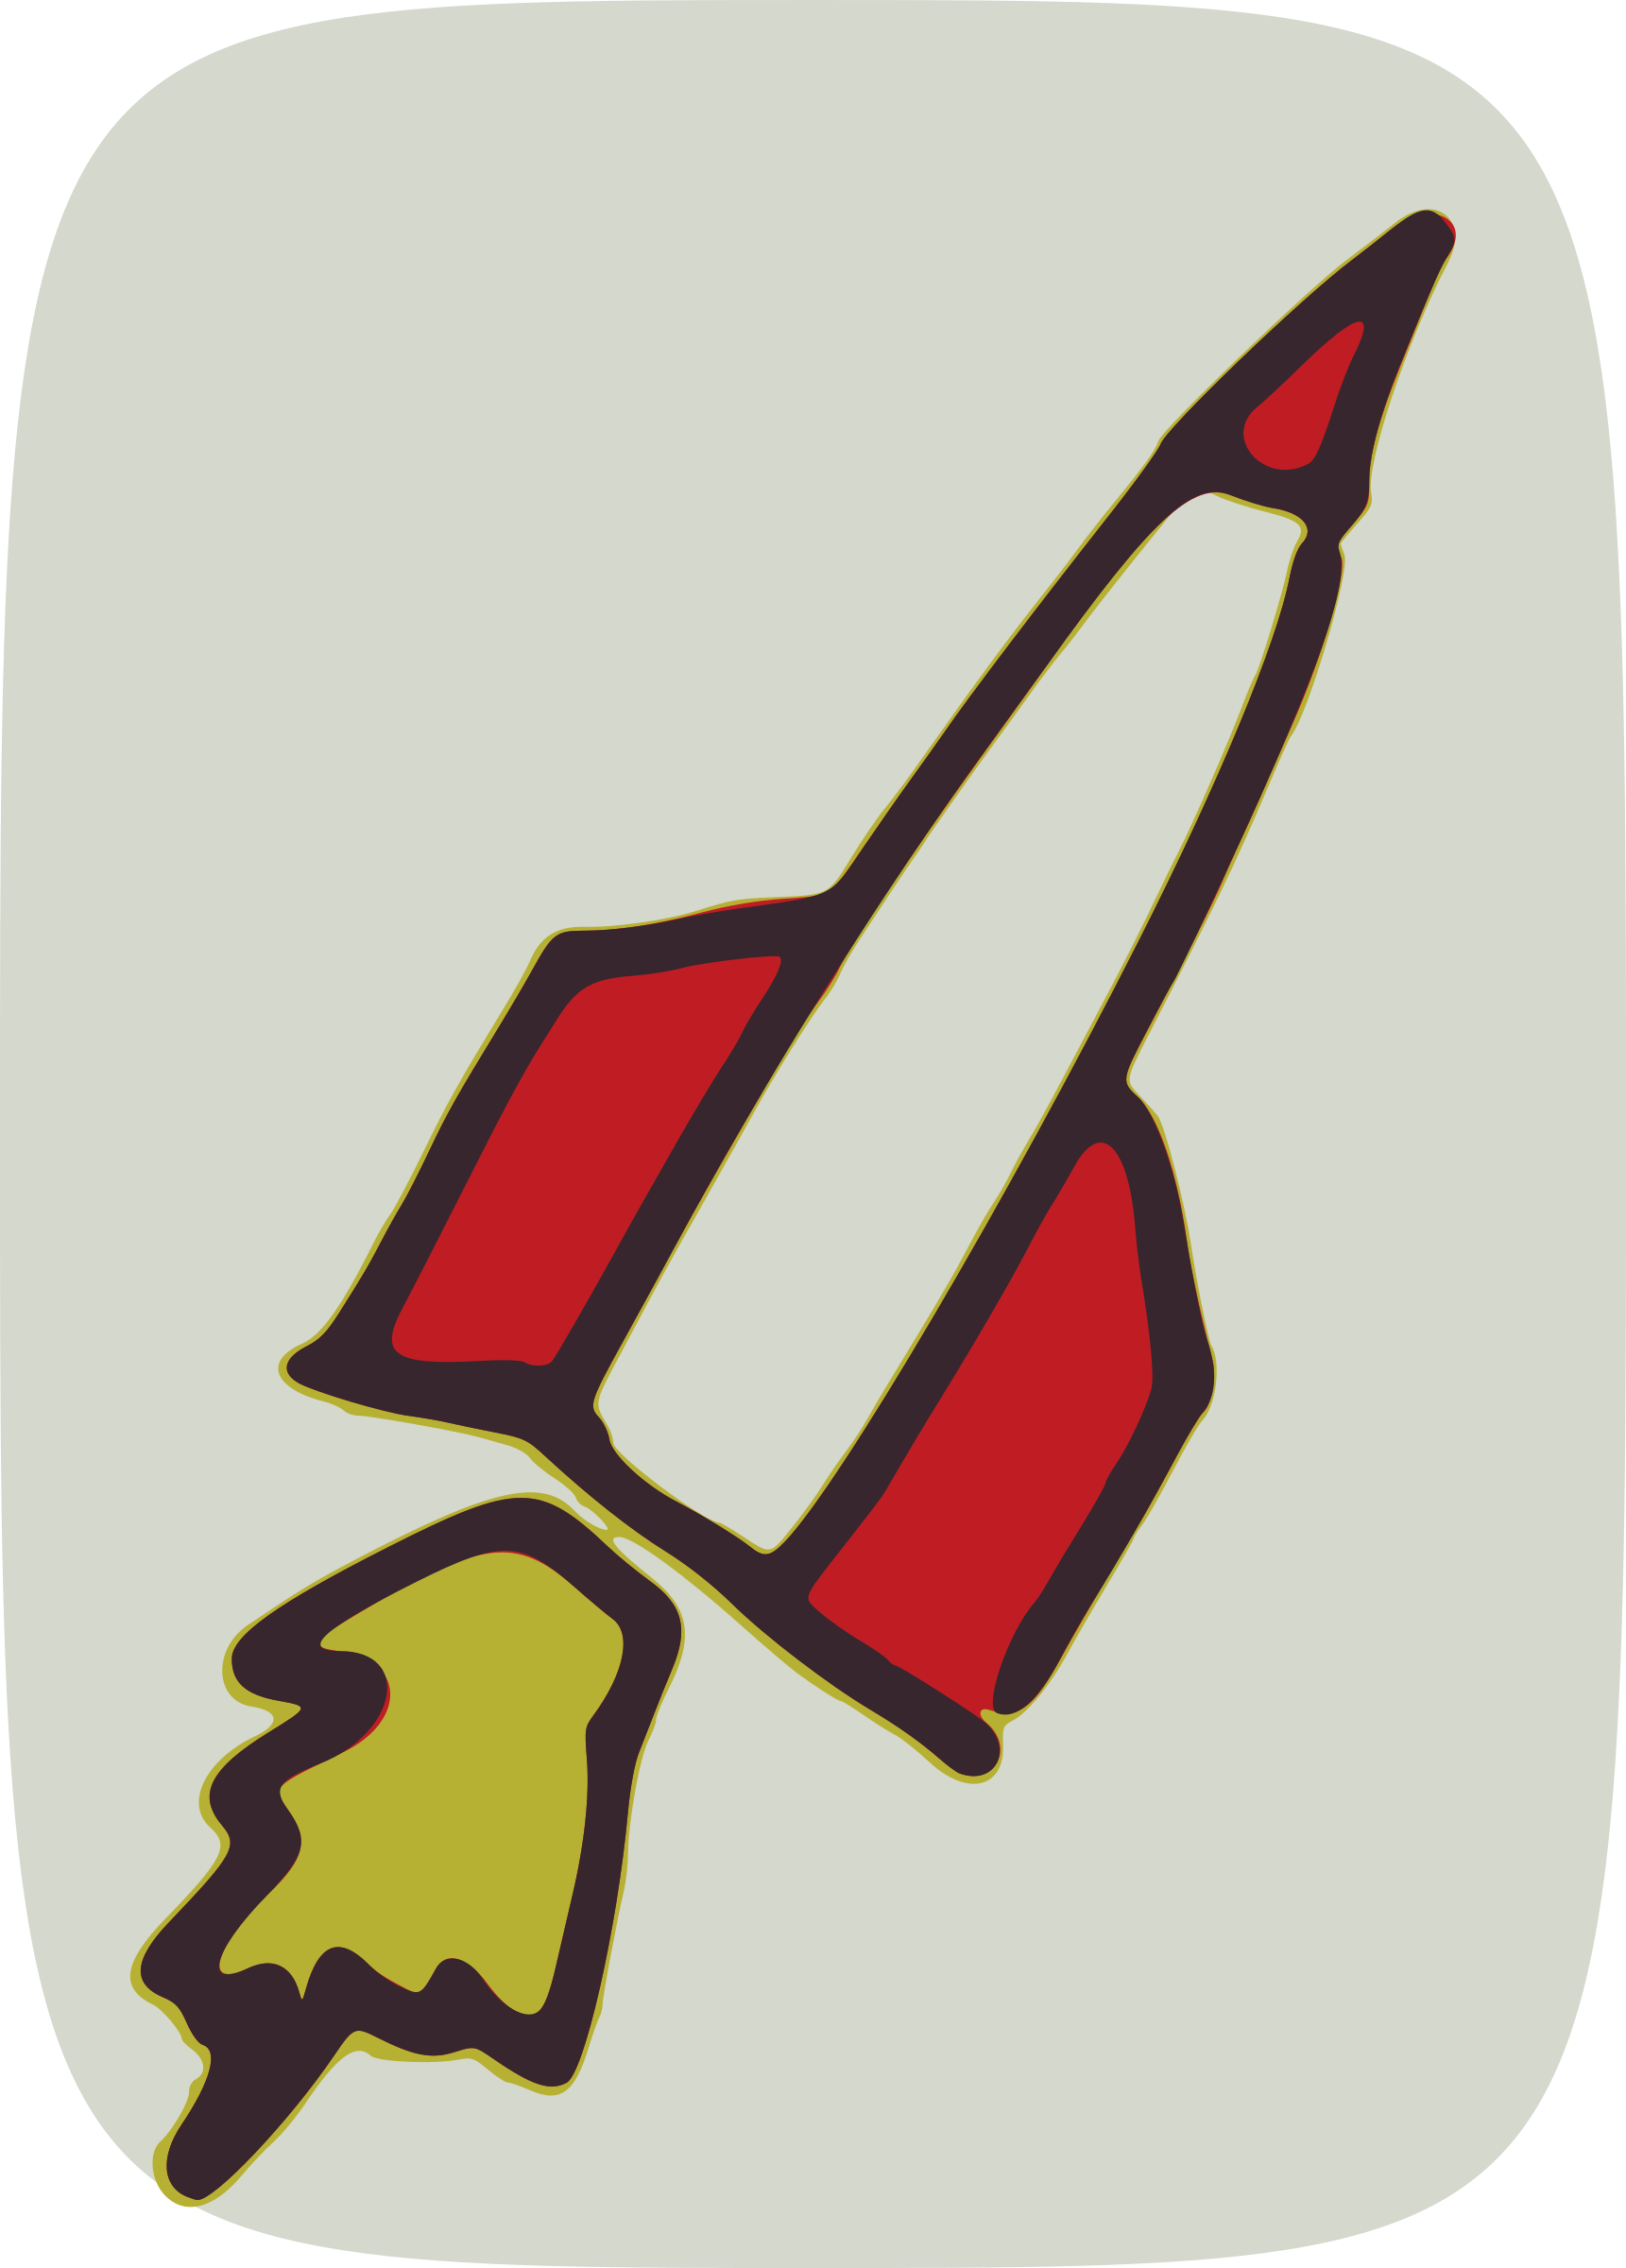 red rocket by global quiz